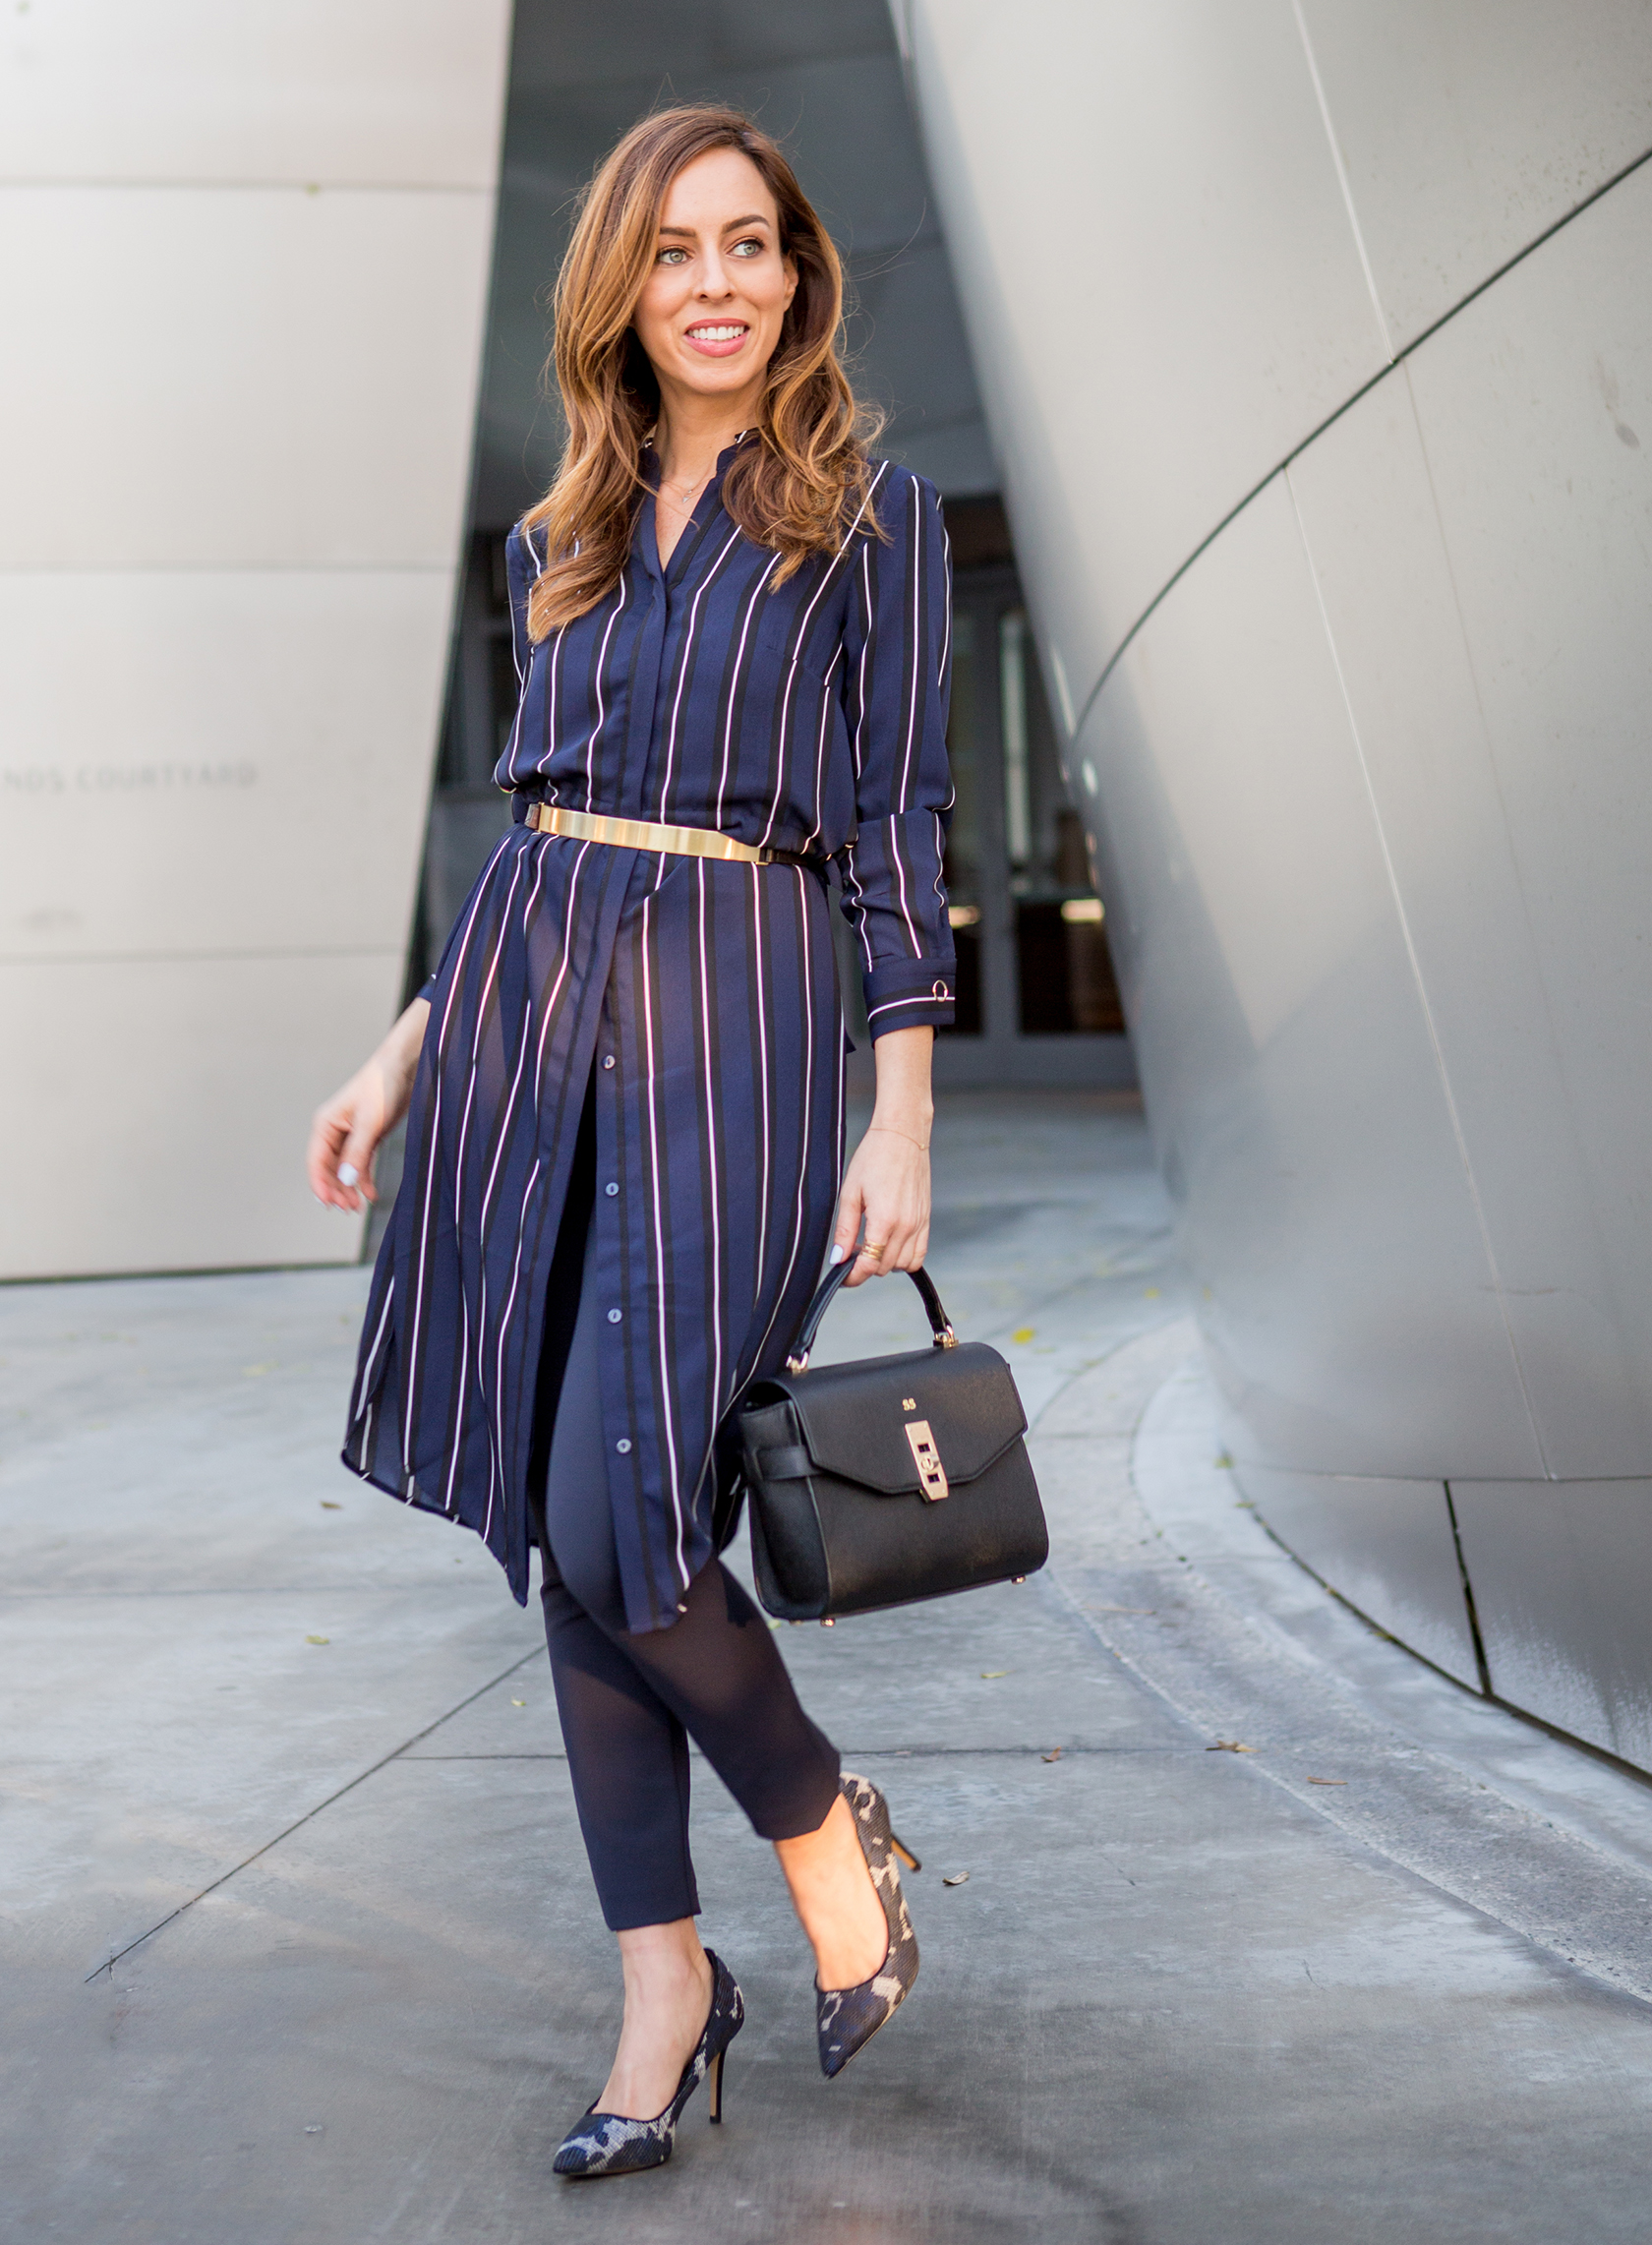 shirt dress outfit office photo - 1